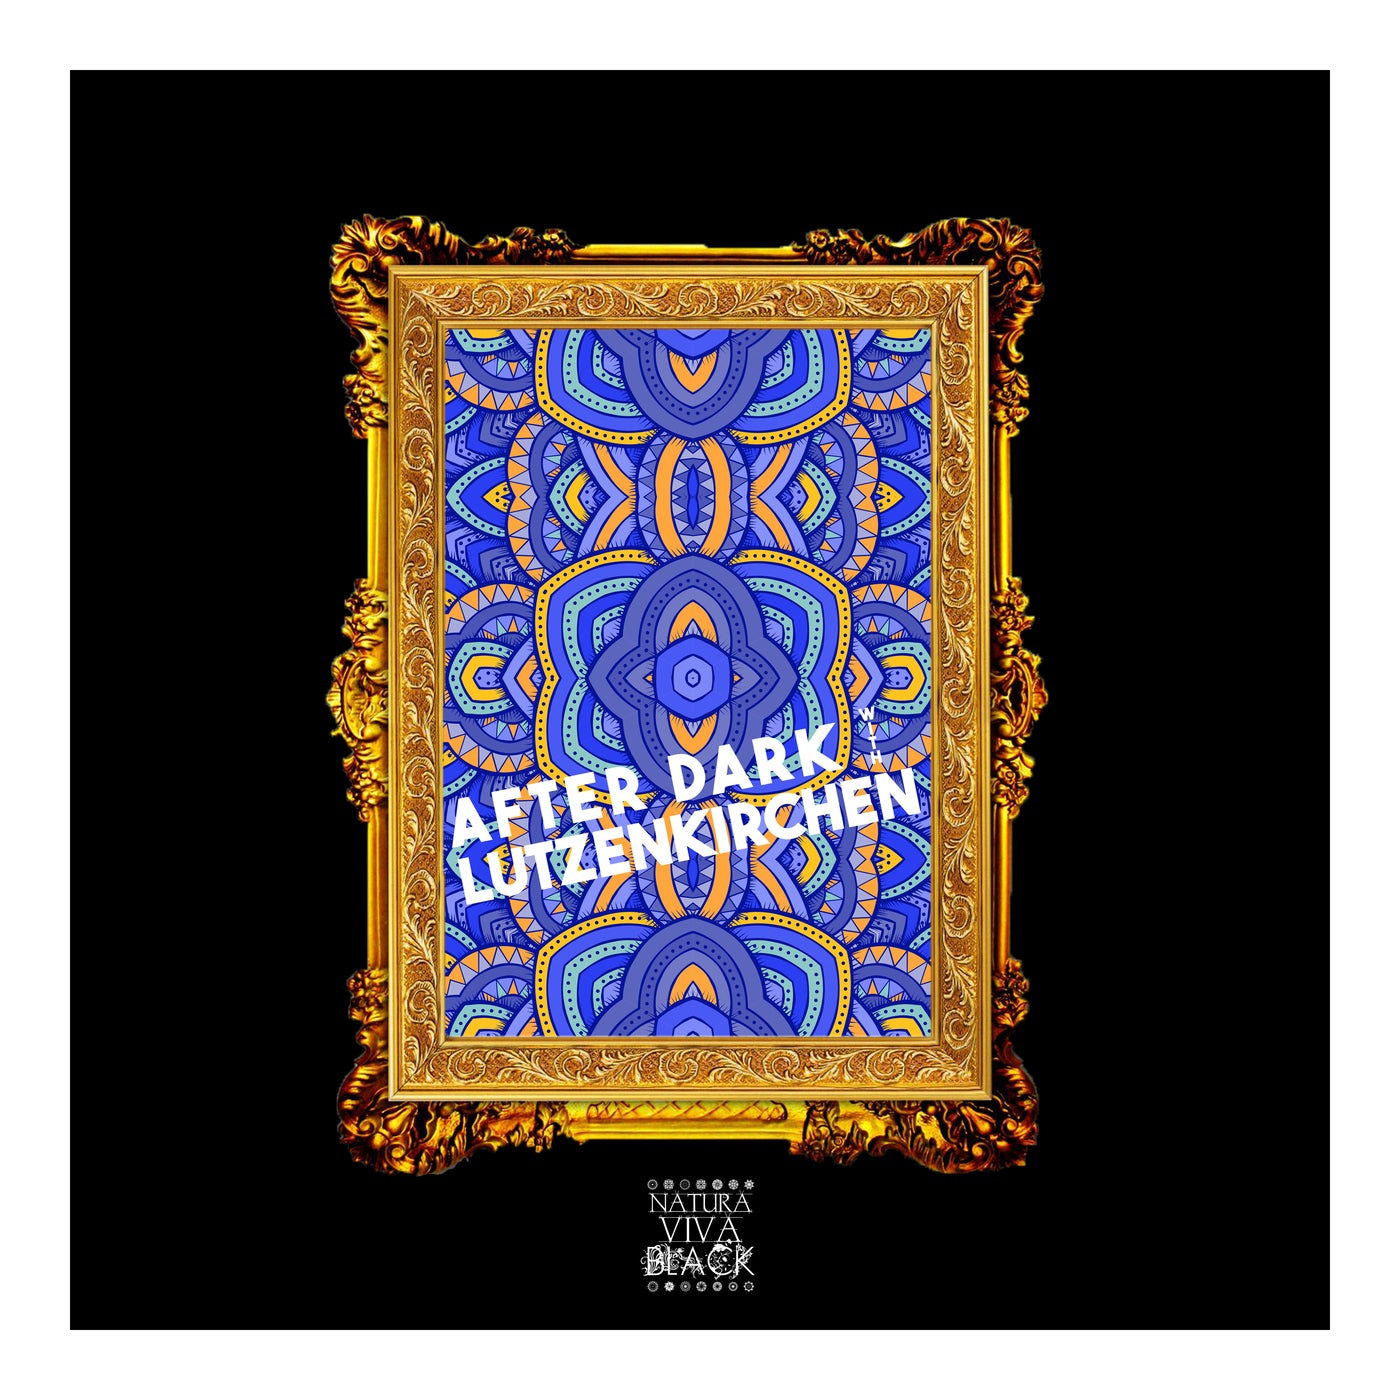 Download After Dark With Lutzenkirchen (Selected And Mixed By Lutzenkirchen) on Electrobuzz